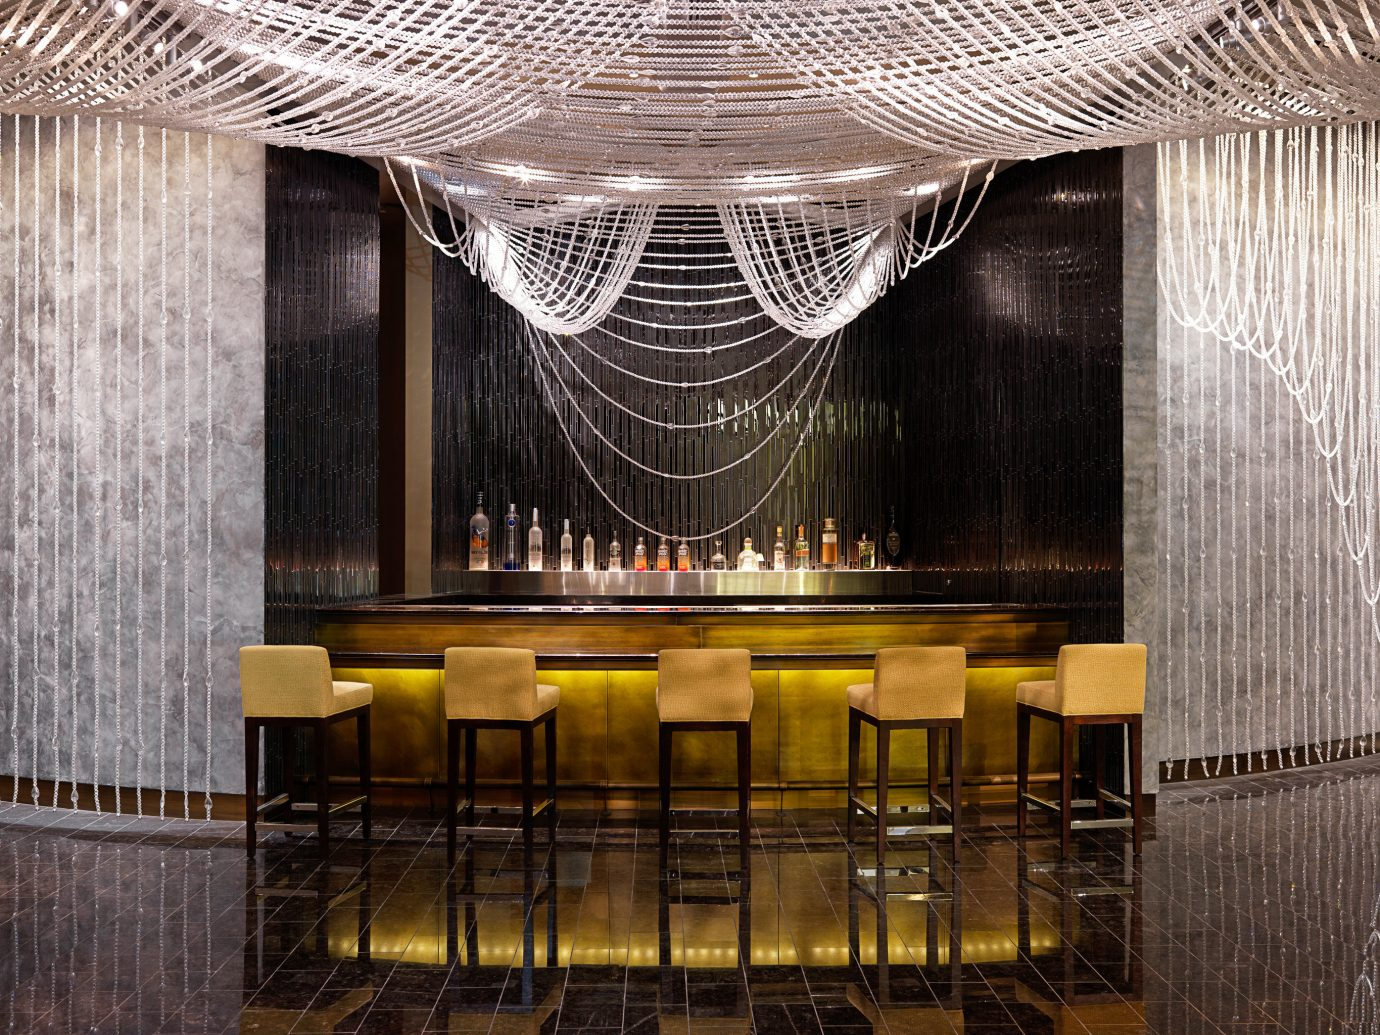 Bar City Design Drink Hotels Resort Trip Ideas Architecture interior design lighting ceiling stage wood window covering Lobby